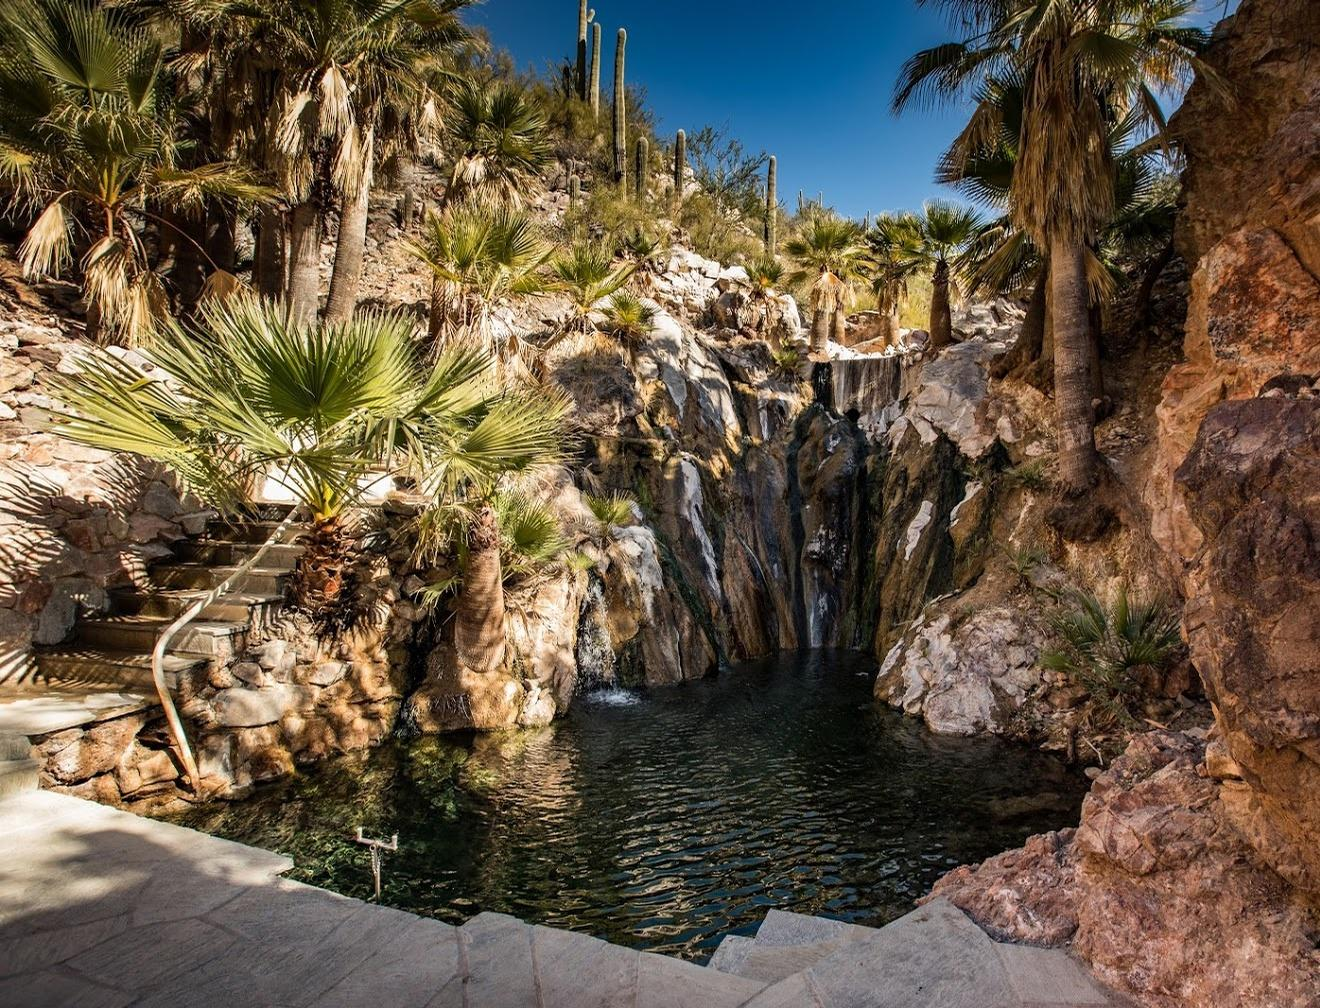 At the epicentre of the 210-acre property are the thermal hot springs, which emit from the earth at 120 degrees Fahrenheit / Castle Hot Springs